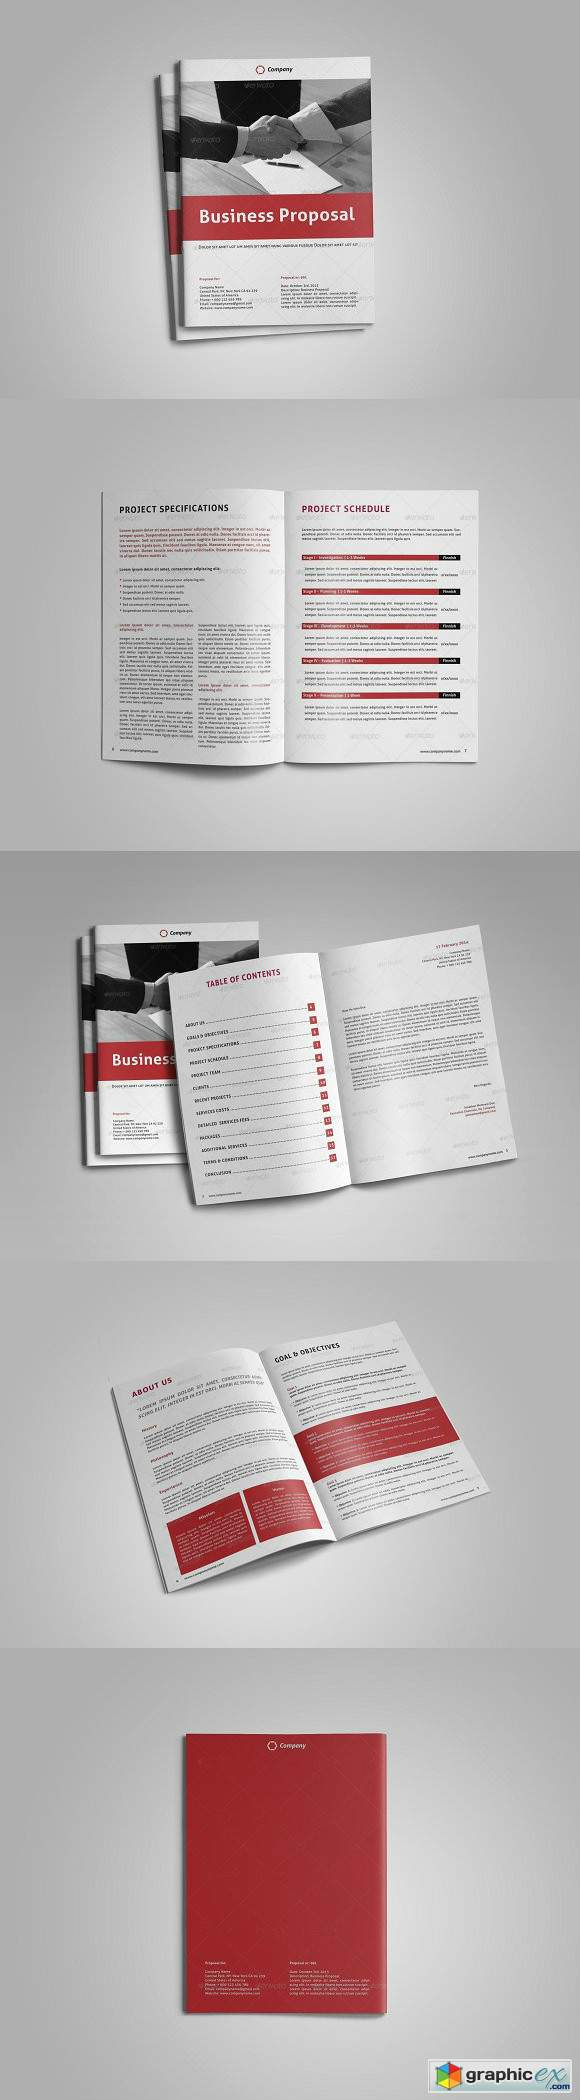 Business Proposal Template 1583482